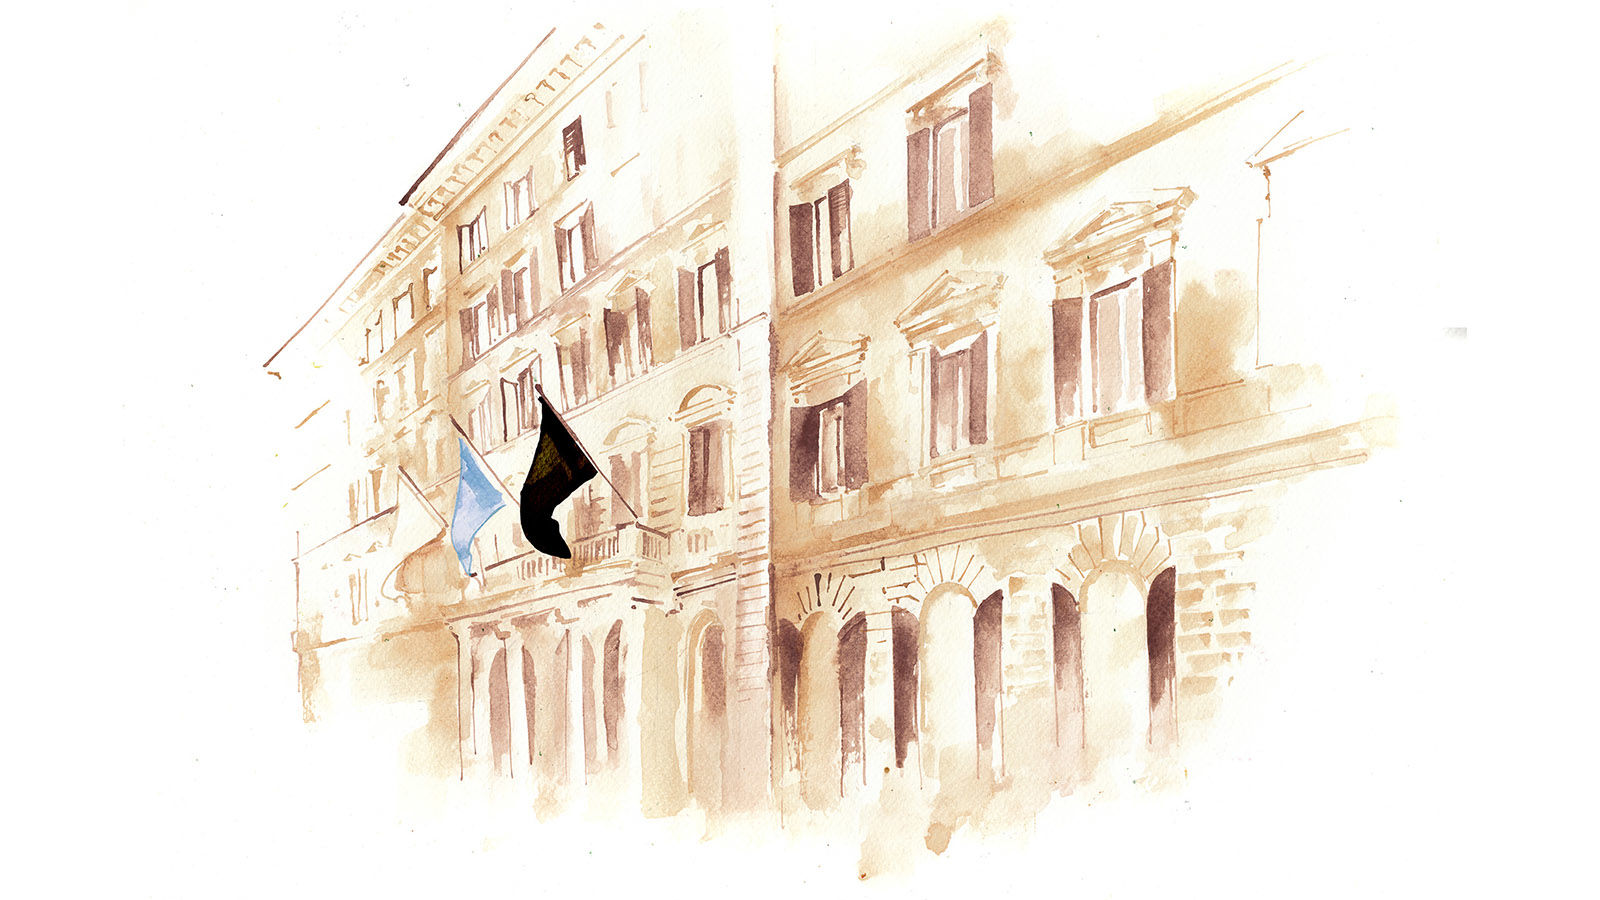 The St. Regis Rome Facade Illustration